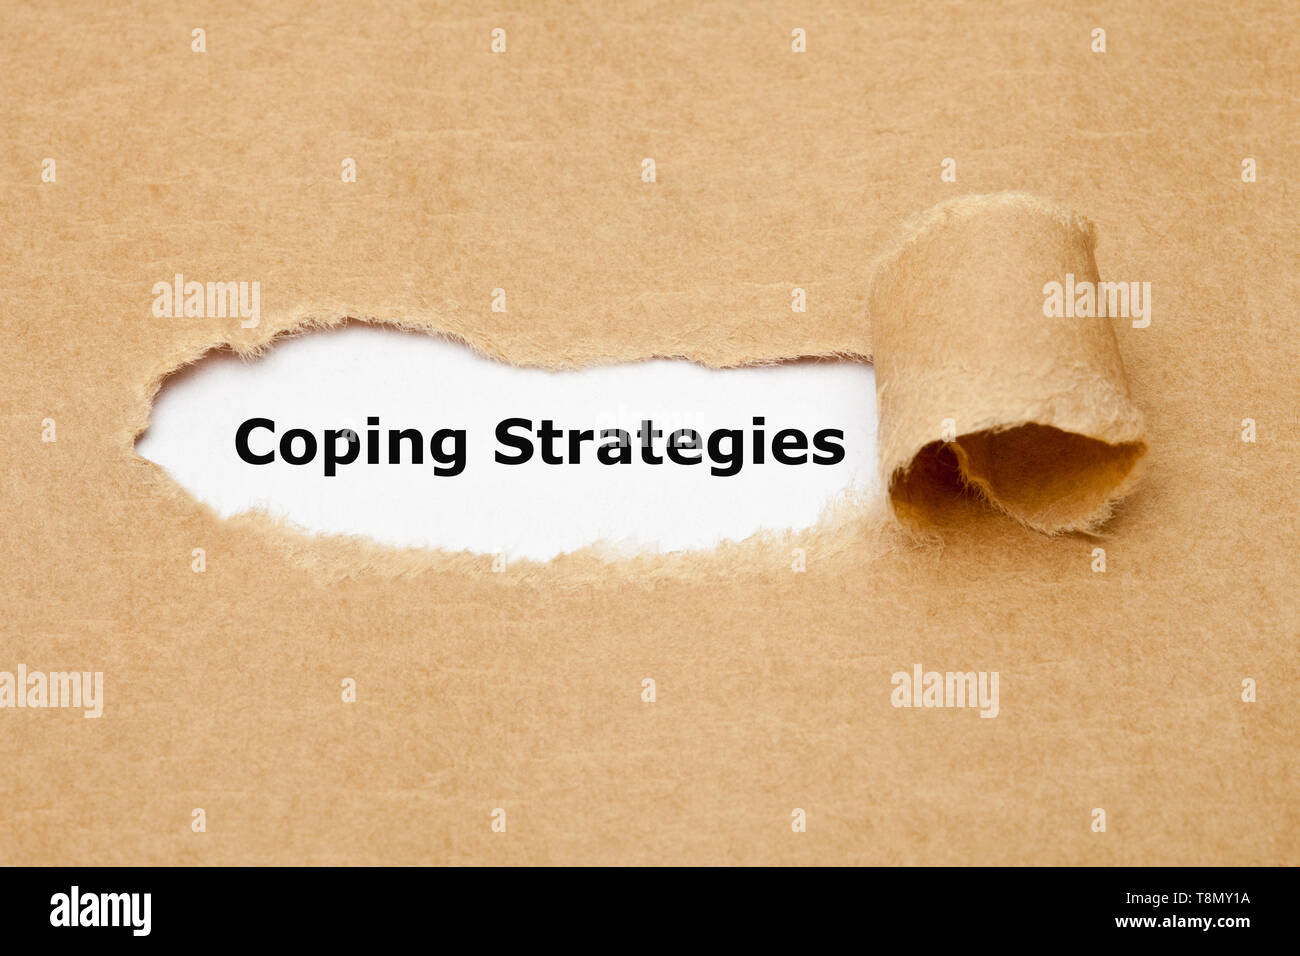 Text Coping Strategies appearing behind ripped paper. Concept about the series of behavioral and psychological skills and actions needed to handle str - Stock Image